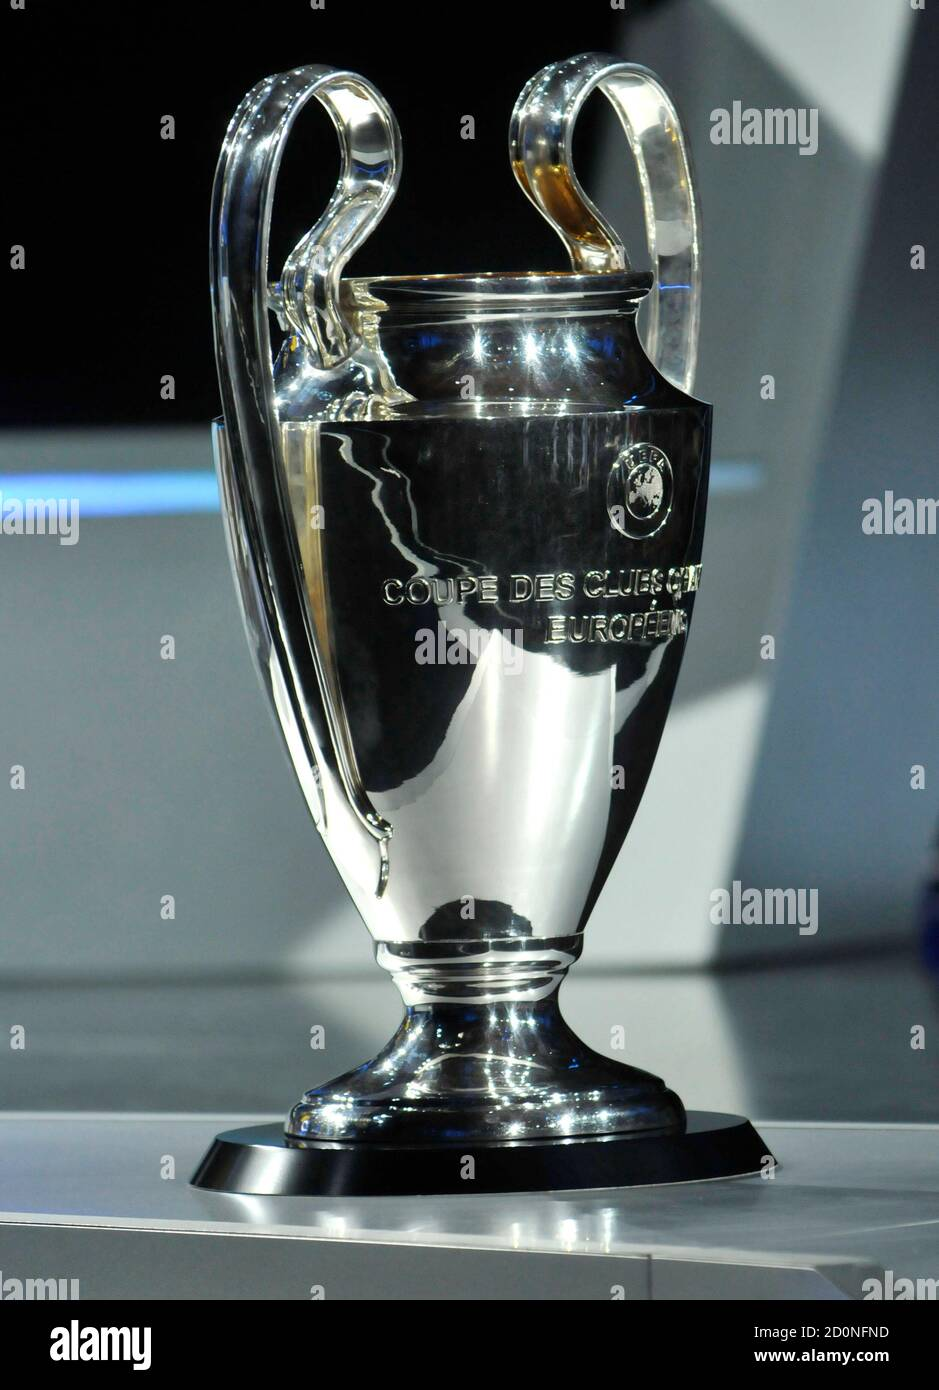 european cup winners high resolution stock photography and images alamy https www alamy com the uefa champions league trophy is seen during the champions league draw in monaco august 25 2011 holders barcelona have been drawn with seven times european cup winners ac milan plus outsiders bate borisov of belarus and viktoria plzen of czech republic in the group stage of the champions league reutersjean pierre amet monaco tags sport soccer image379101449 html